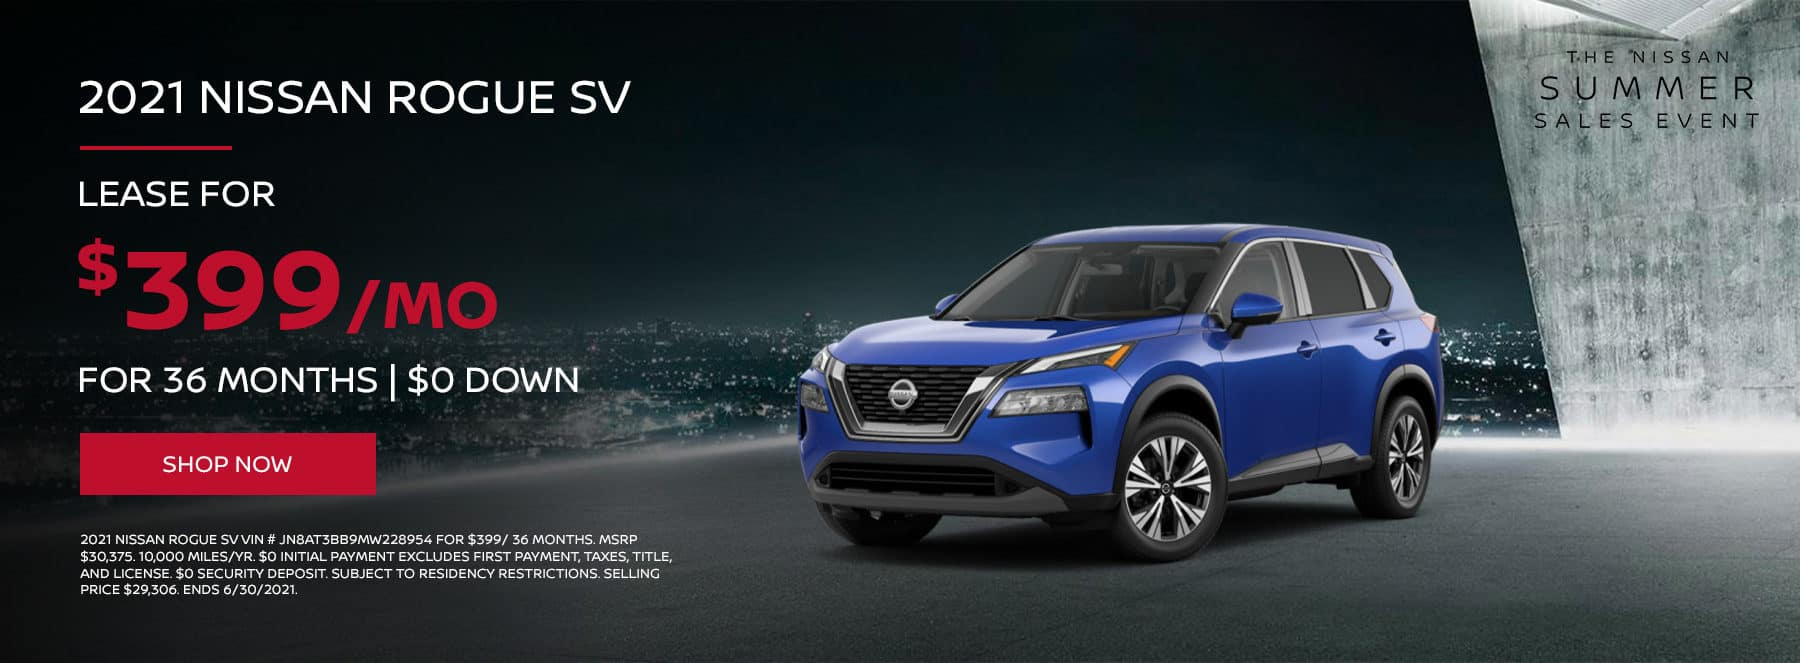 2021 Nissan Rogue SV, Lease for $399/month for 36 months. $0 Down!